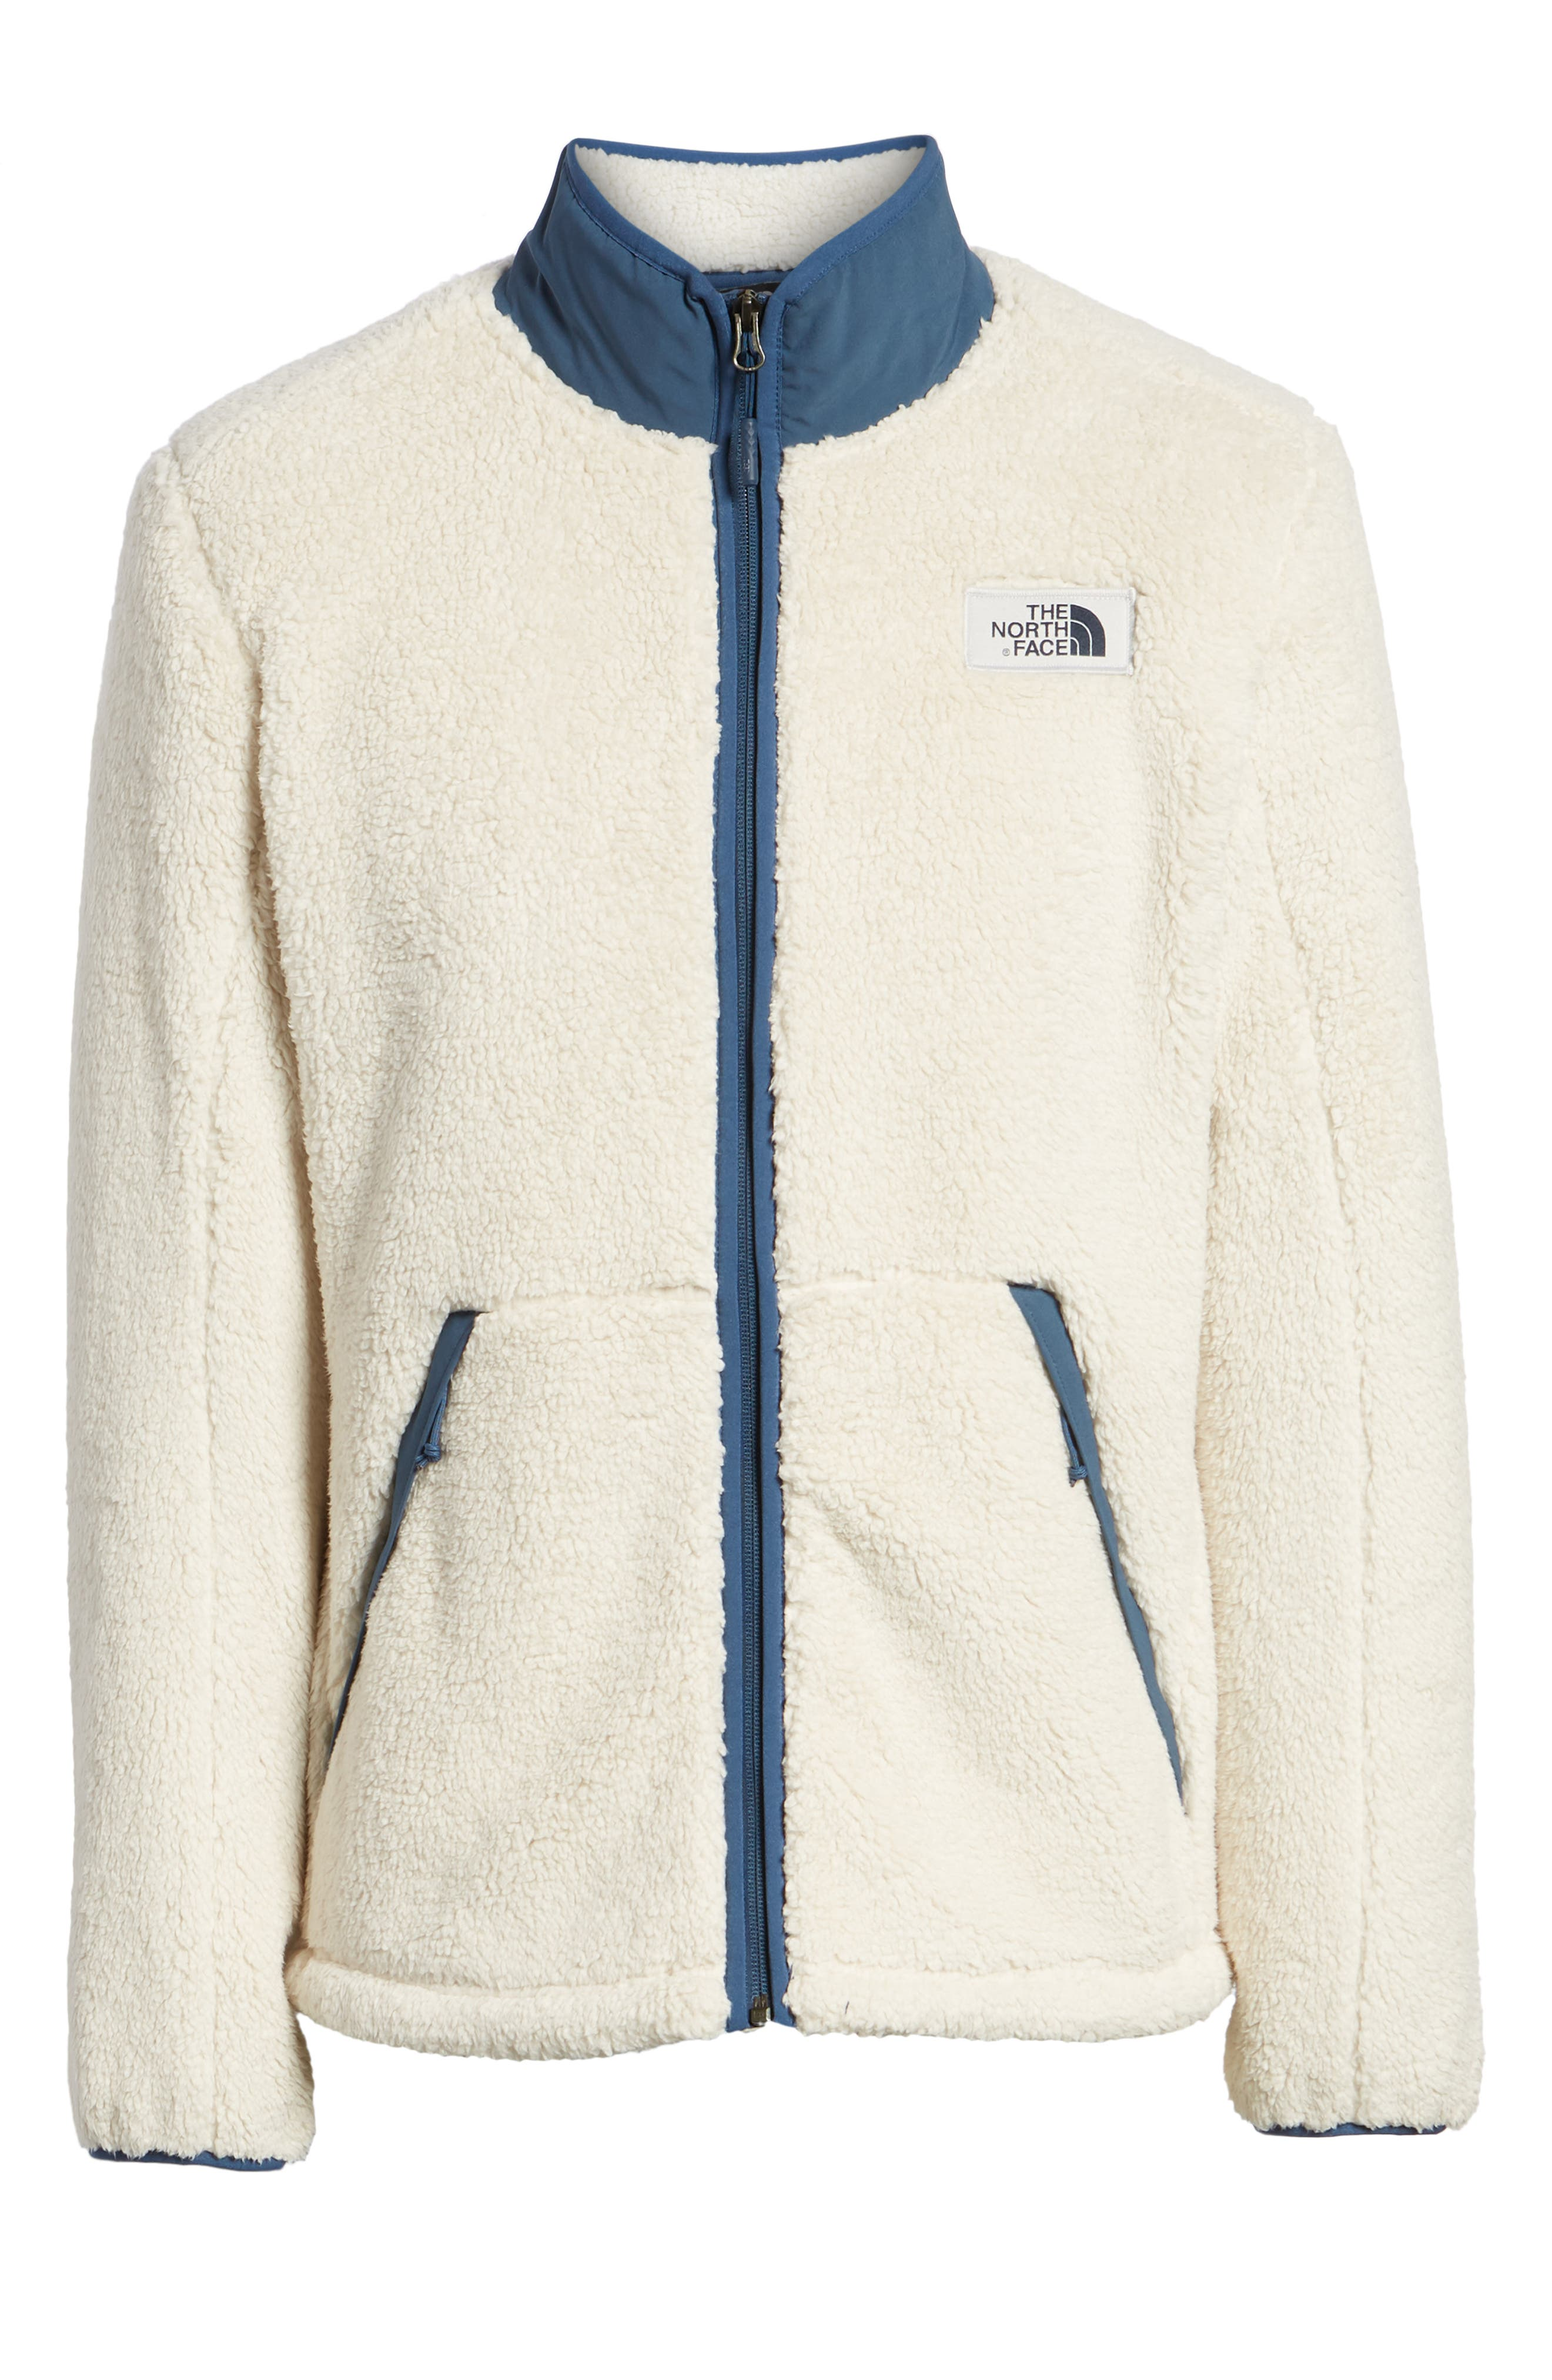 Campshire Zip Fleece Jacket,                             Alternate thumbnail 6, color,                             VINTAGE WHITE/ SHADY BLUE